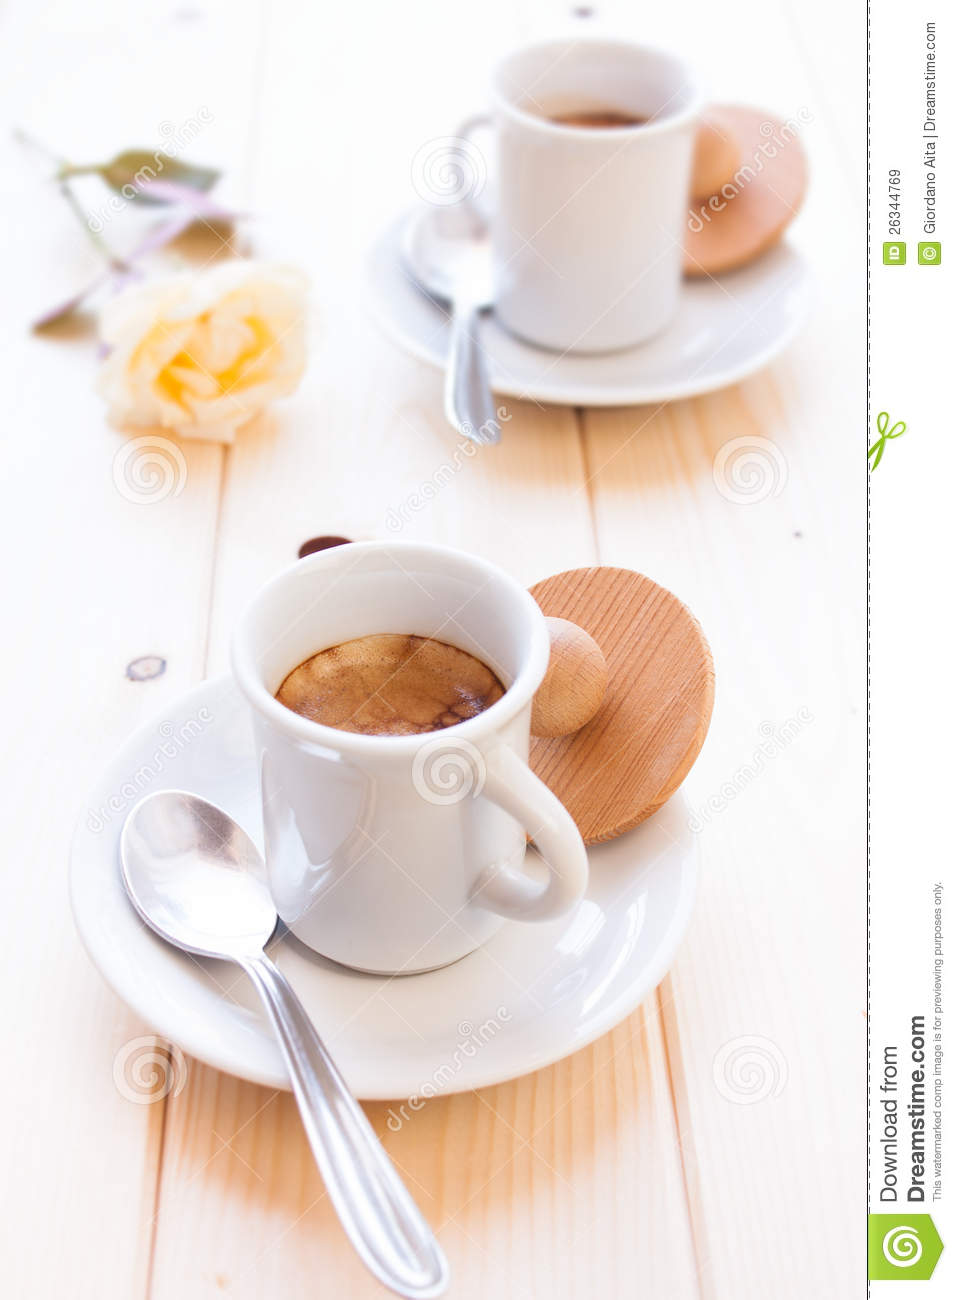 Espresso coffee cup on wood table for a energetic breakfast.